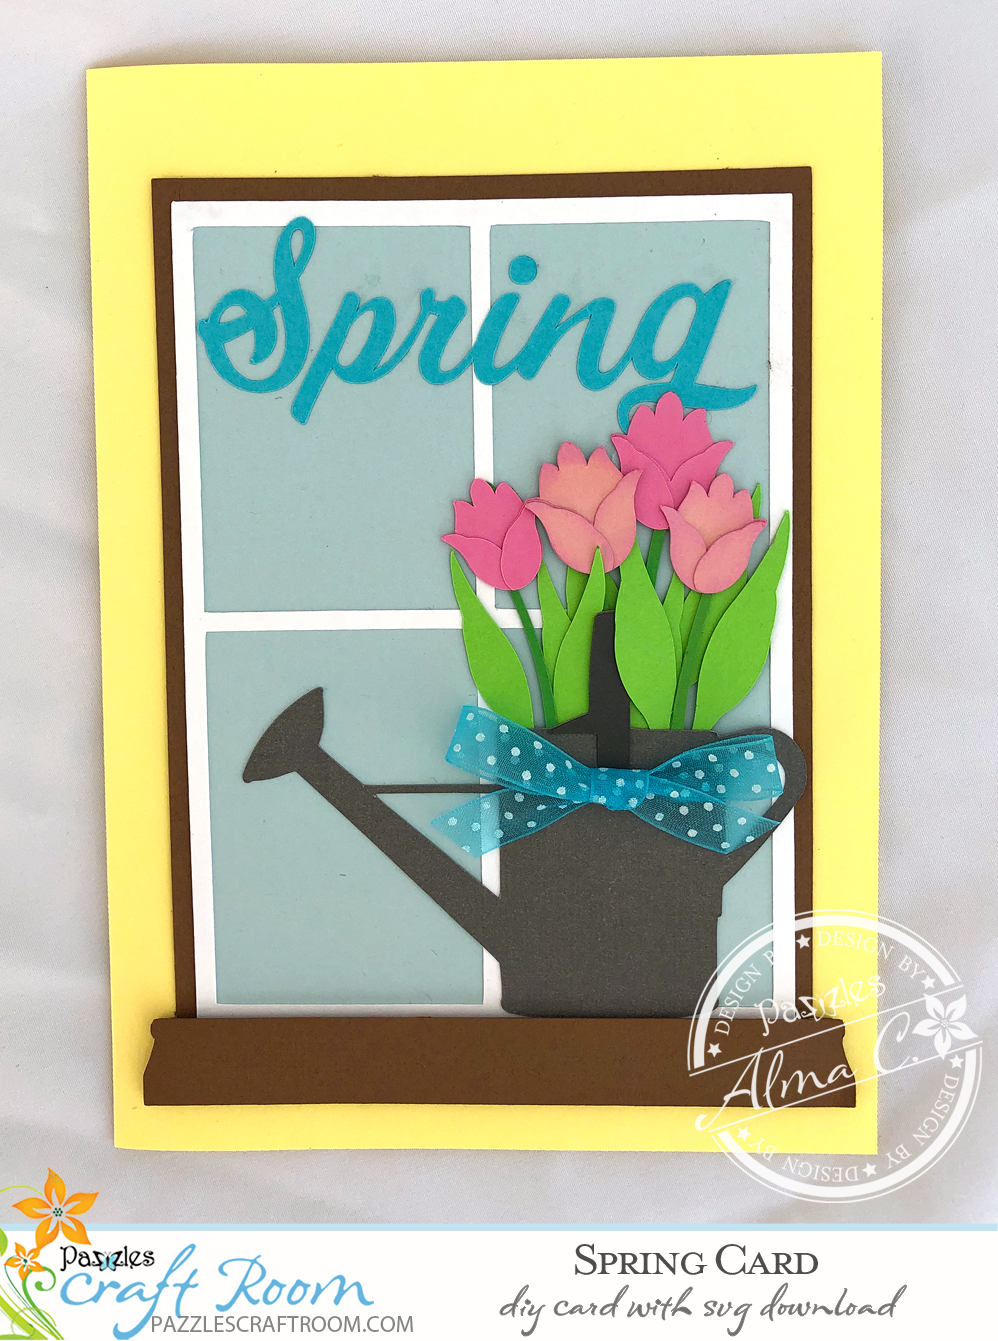 Pazzles DIY Spring Tulip Card with instant SVG download. Compatible with all major electronic cutters including Pazzles Inspiration, Cricut, and Silhouette Cameo. Design by Alma Cervantes.